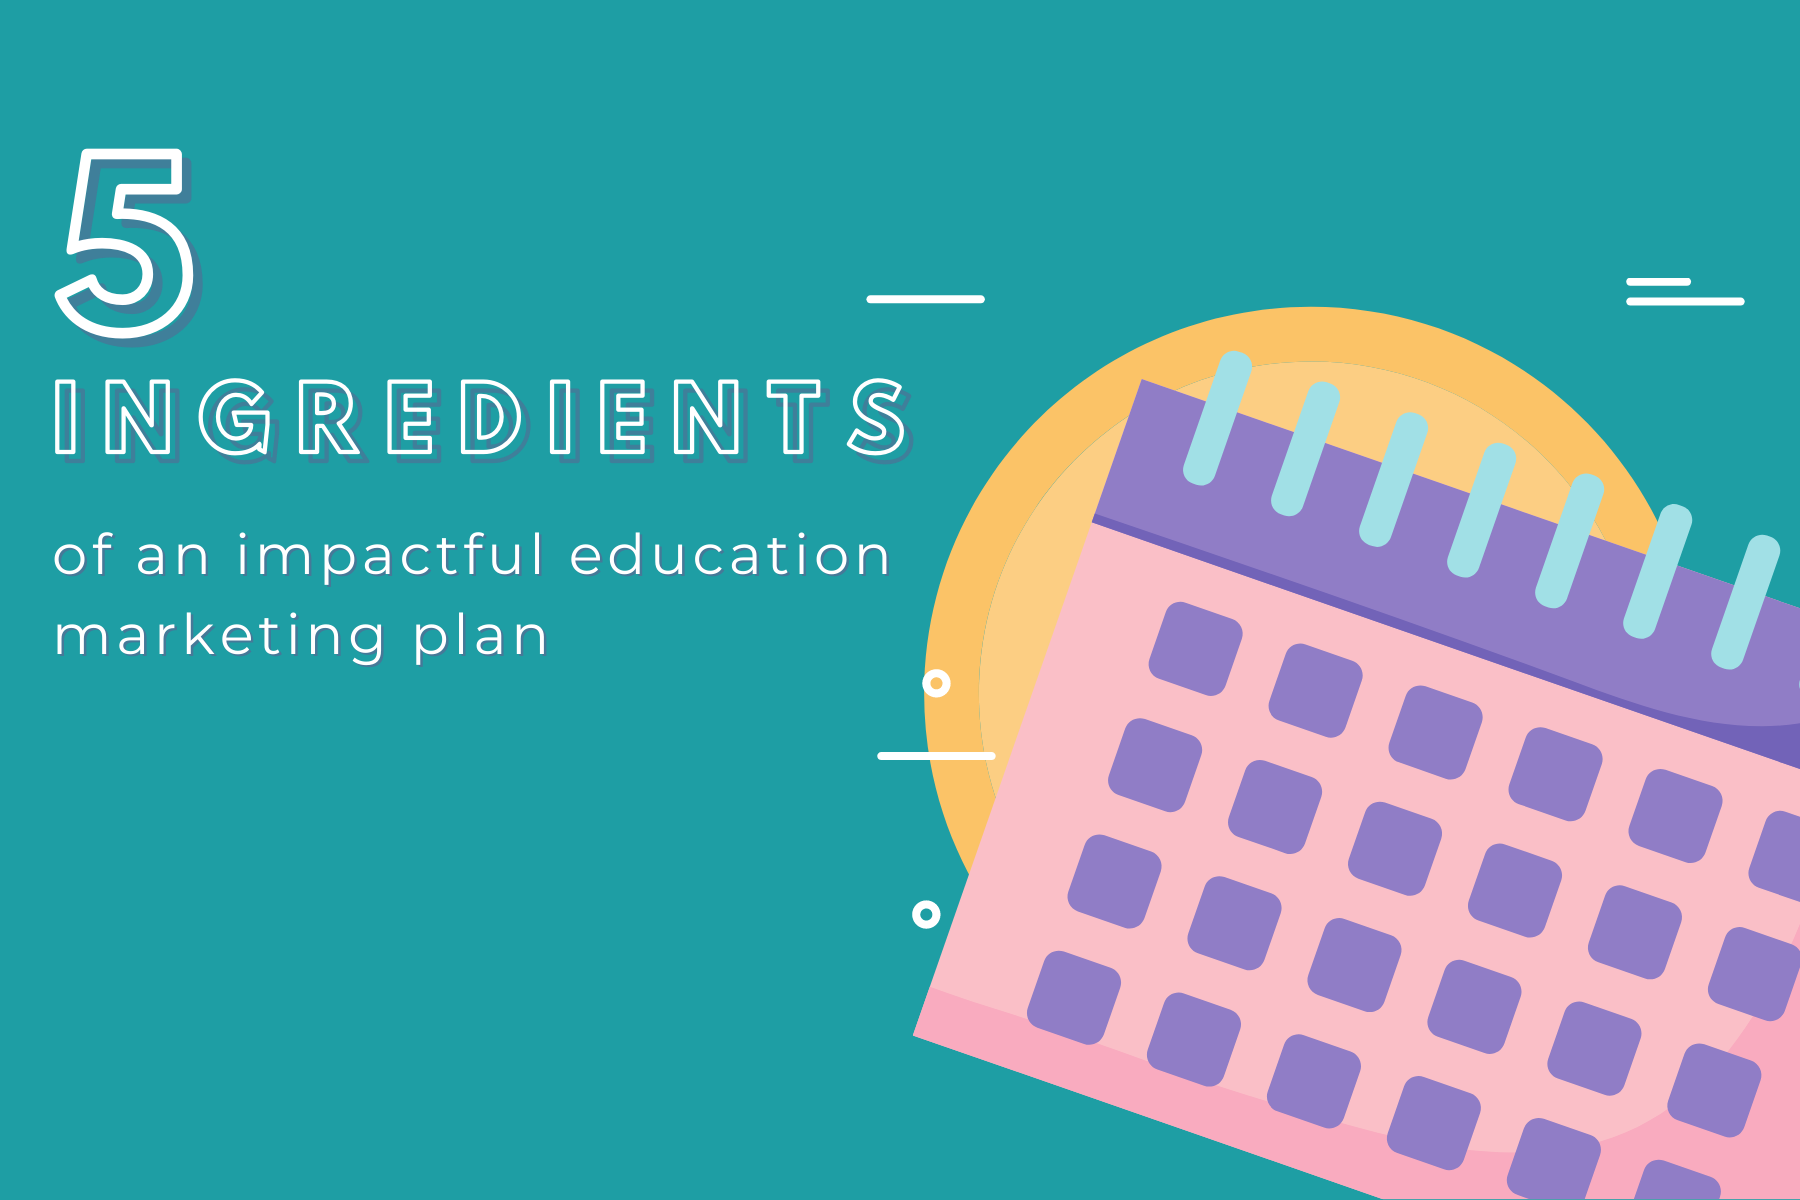 5 ingredients of an impactful education marketing plan